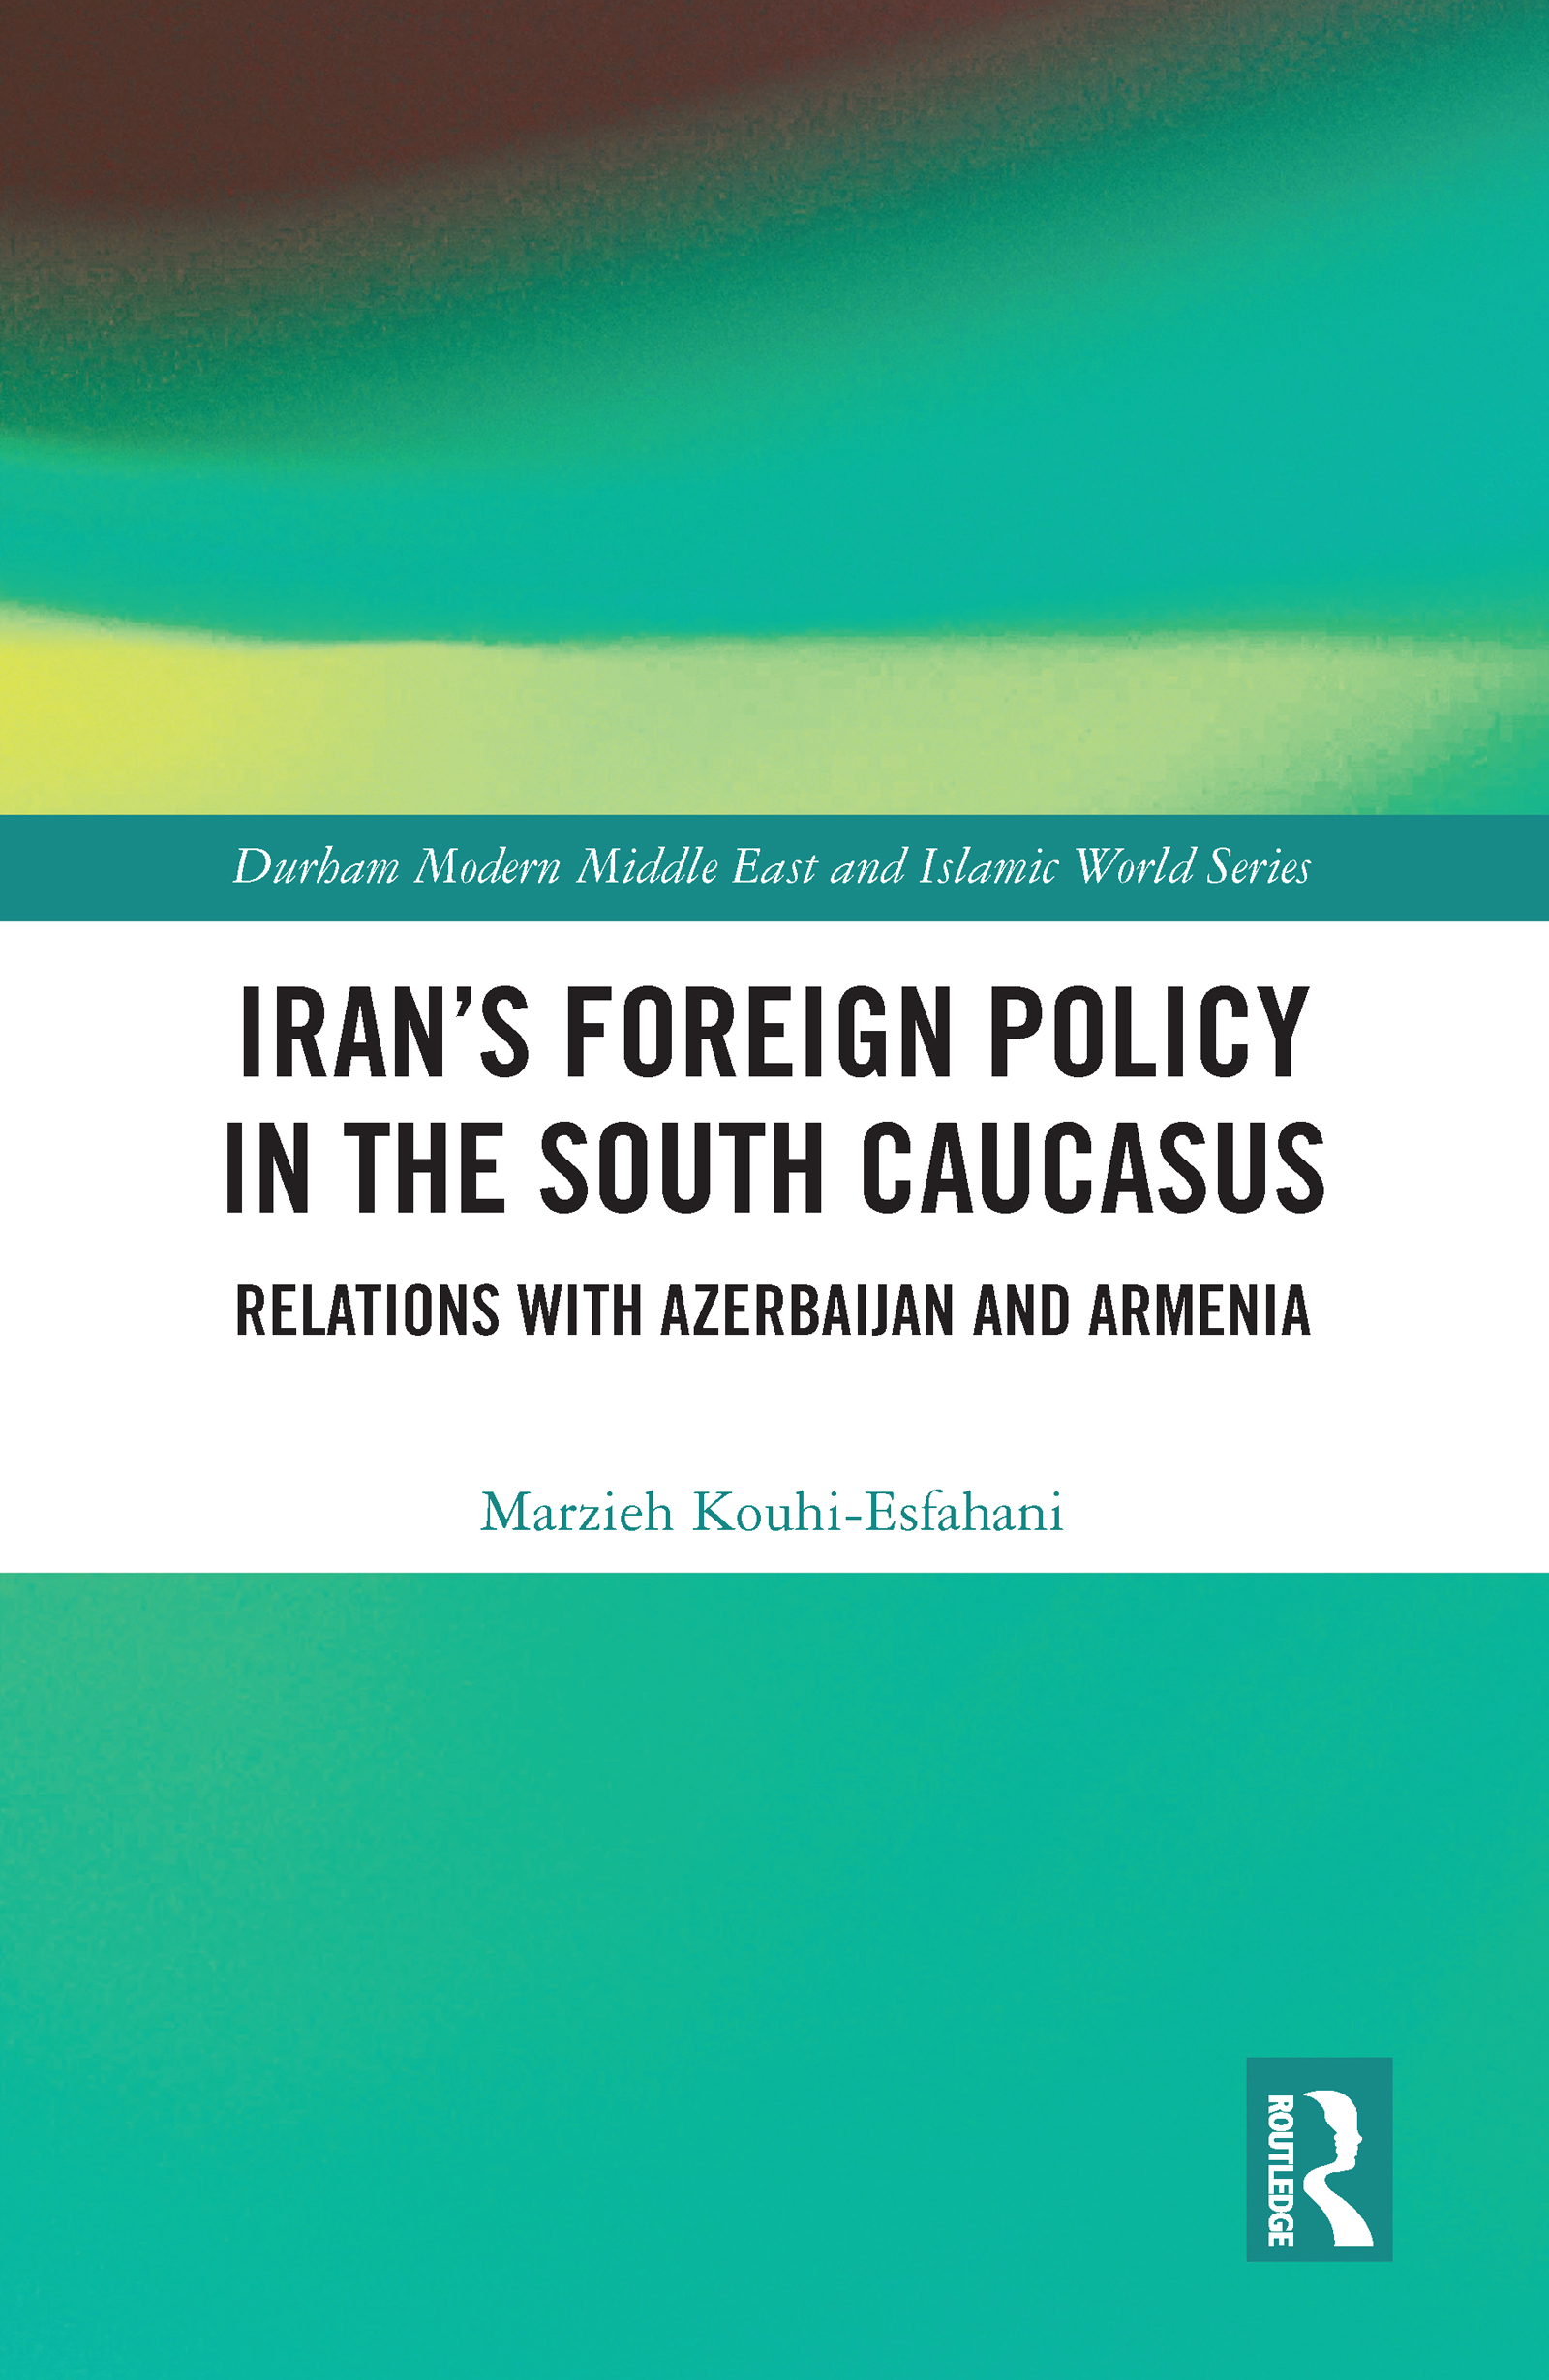 Iran's Foreign Policy in the South Caucasus